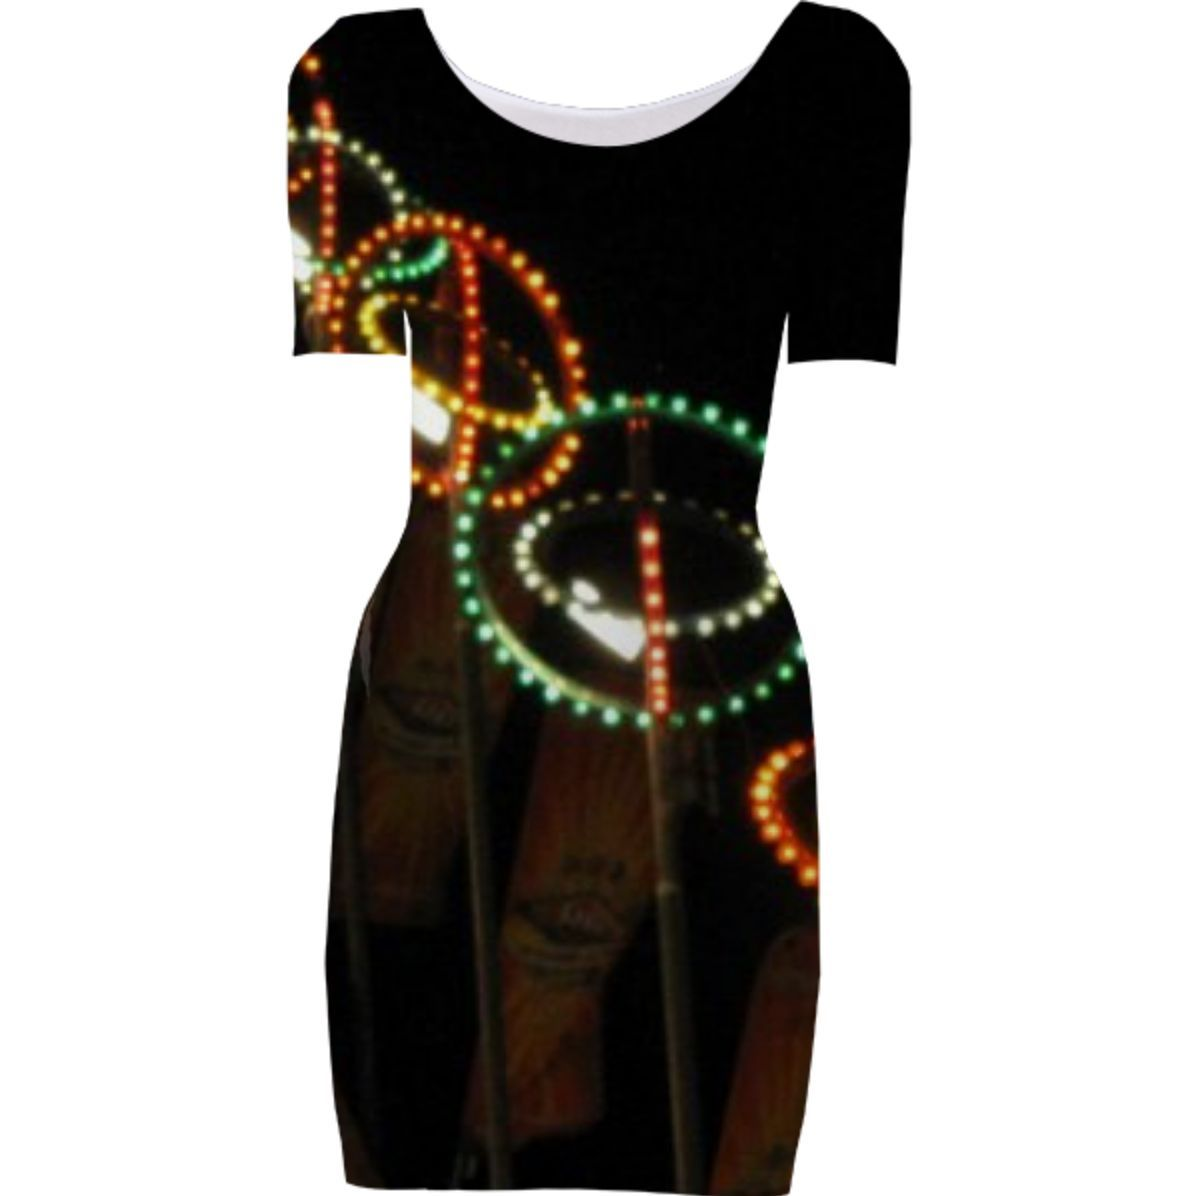 Carnival Lights Dress from Print All Over Me